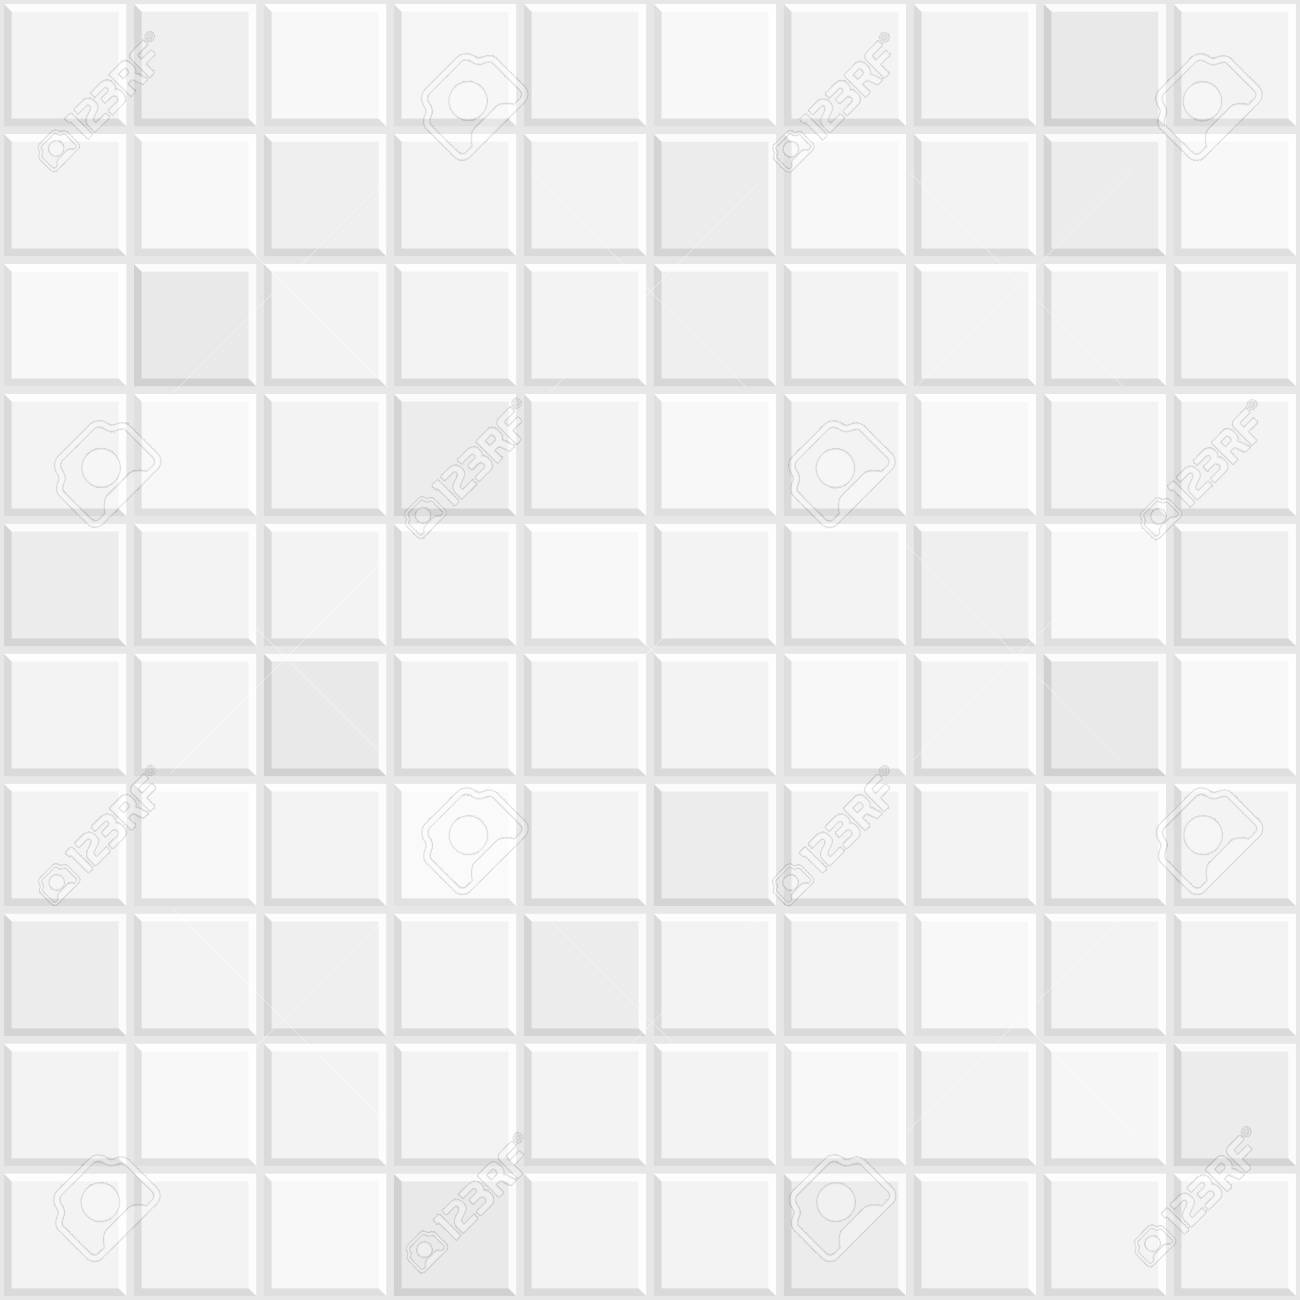 White Tiles Seamless Texture Vintage Ceramic Kitchen Or Bathroom Royalty Free Cliparts Vectors And Stock Illustration Image 112078402